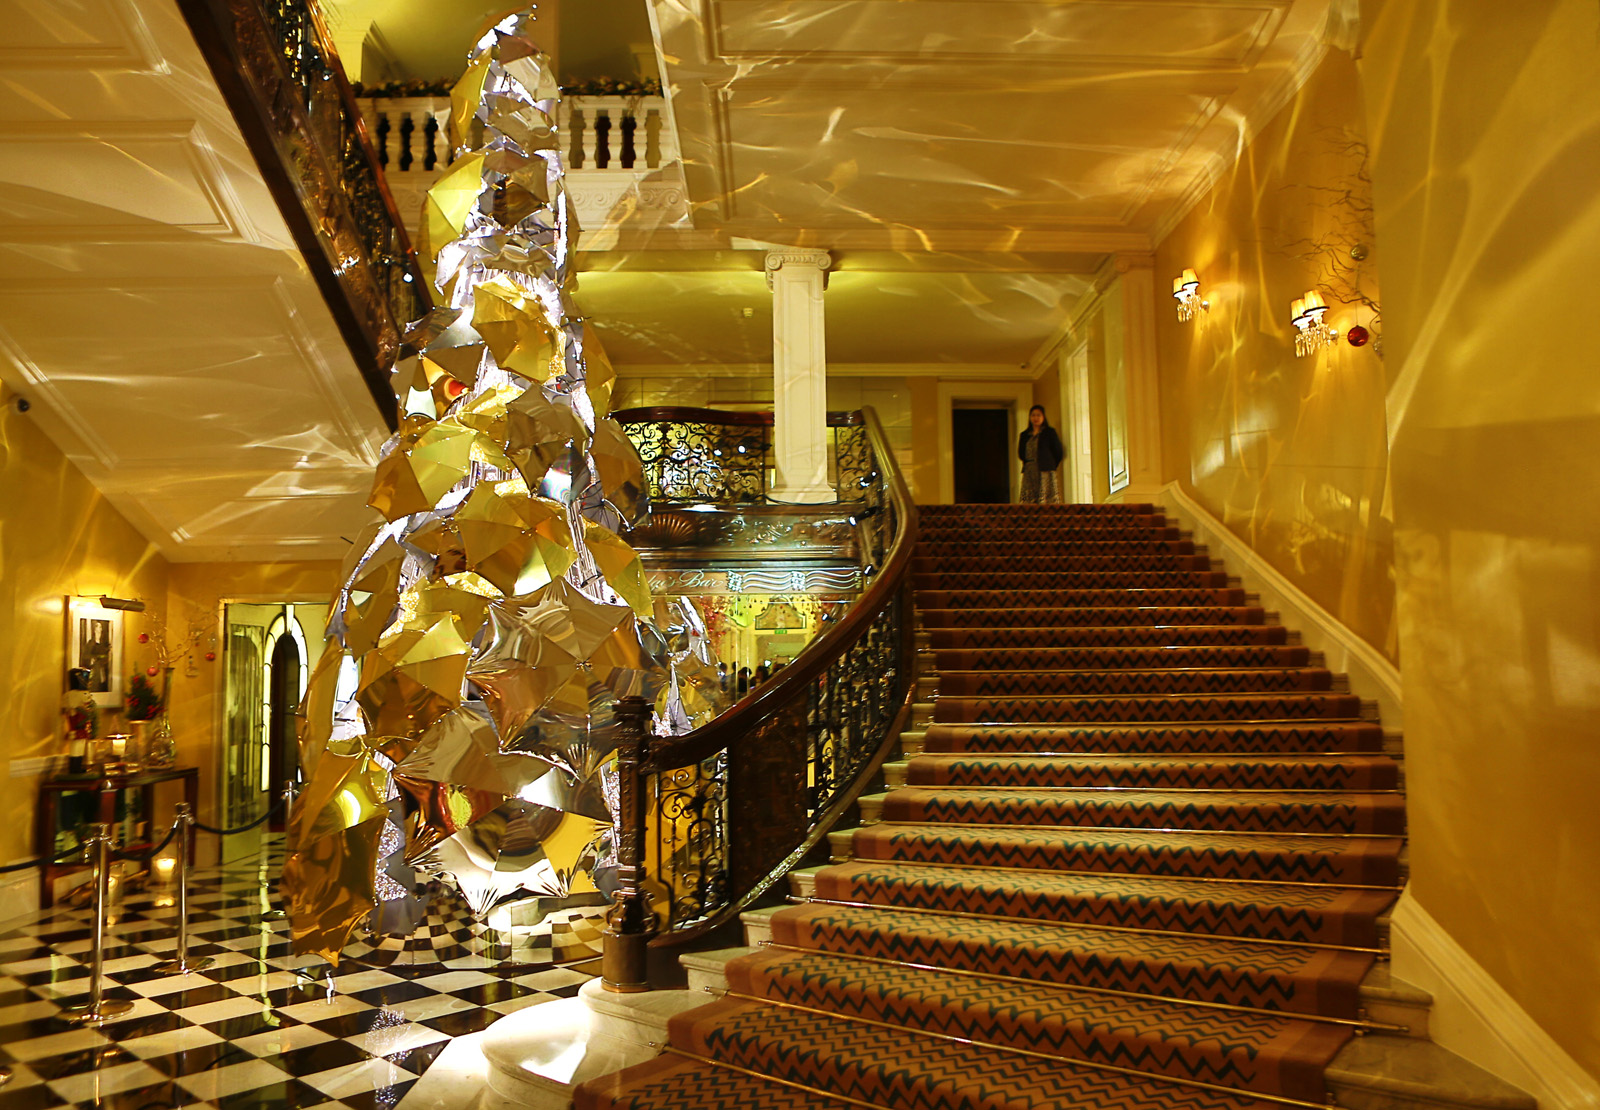 #72410A 5 Ultra Festive Hotel Christmas Trees Luxury Travel Magazine 5551 decorations noel russie 1600x1110 px @ aertt.com